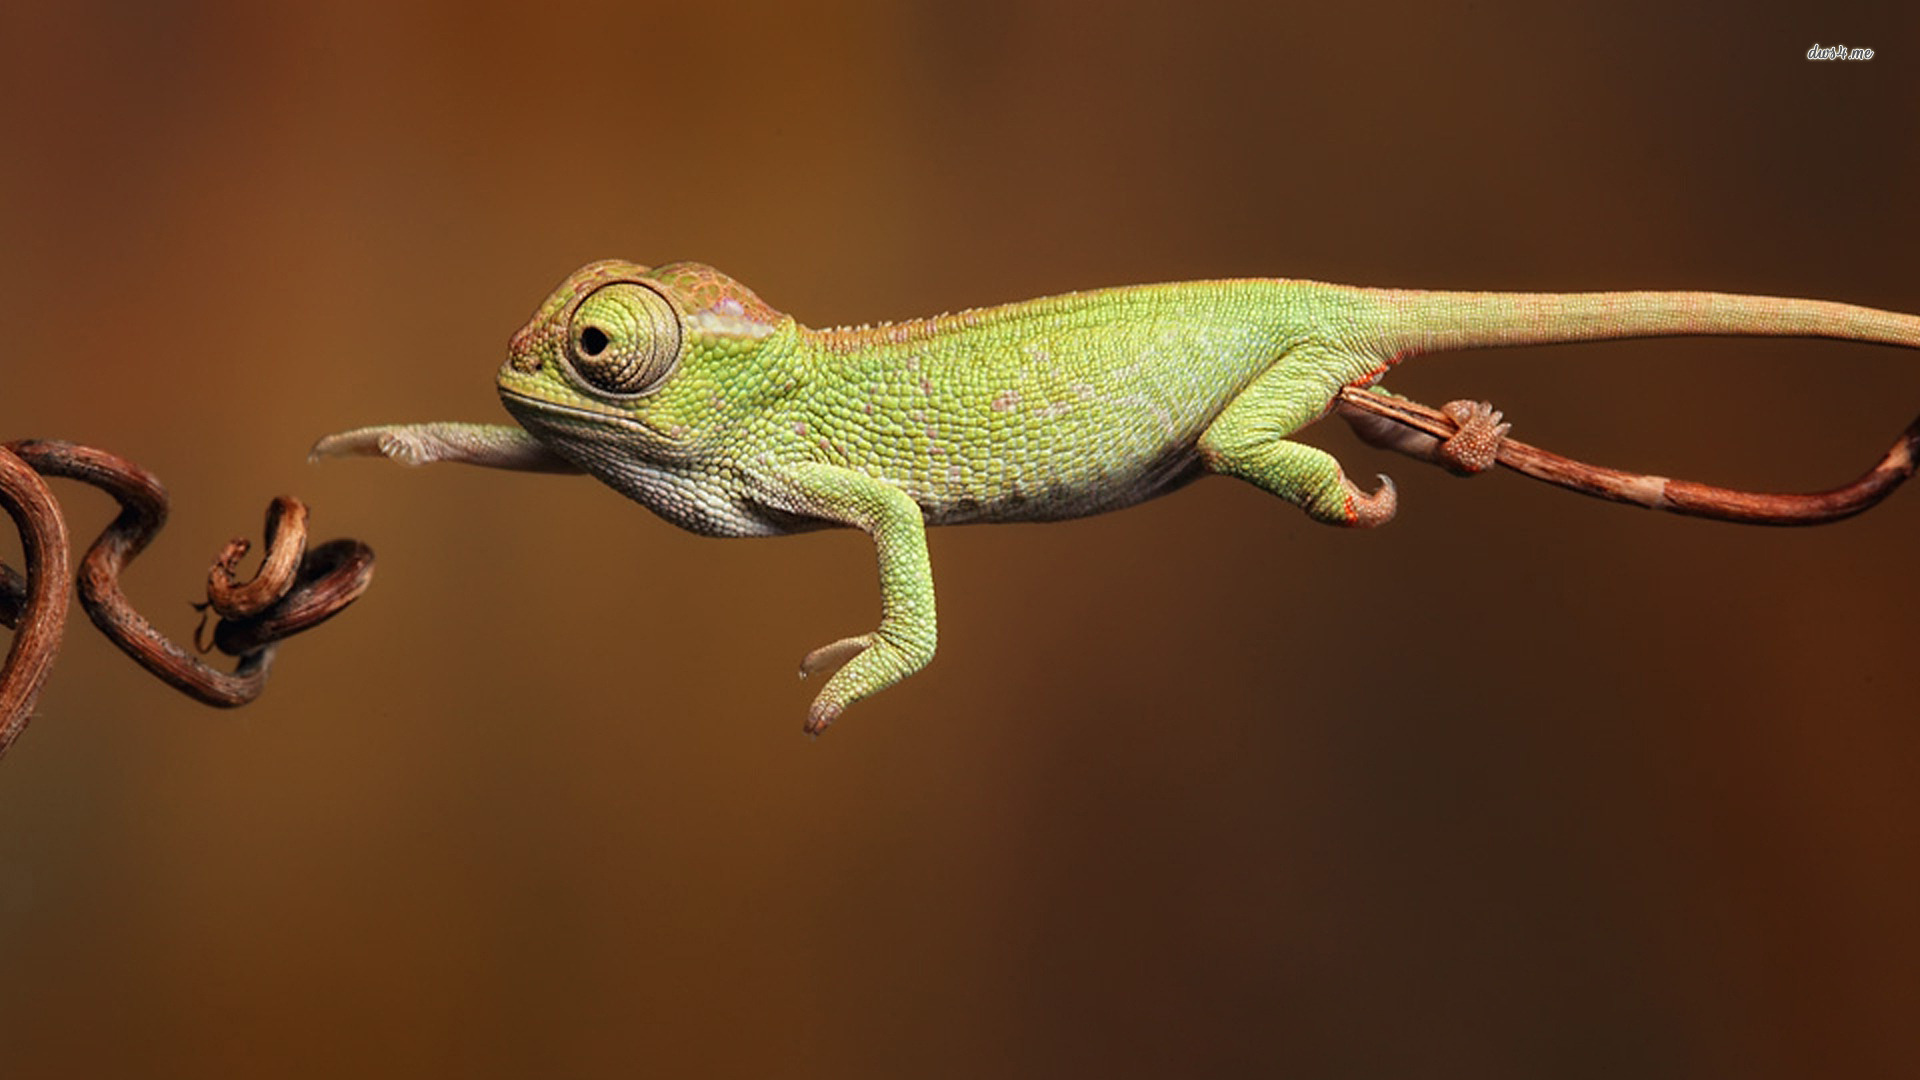 Chameleon Wallpaper 36996 Hd Wallpapers Background